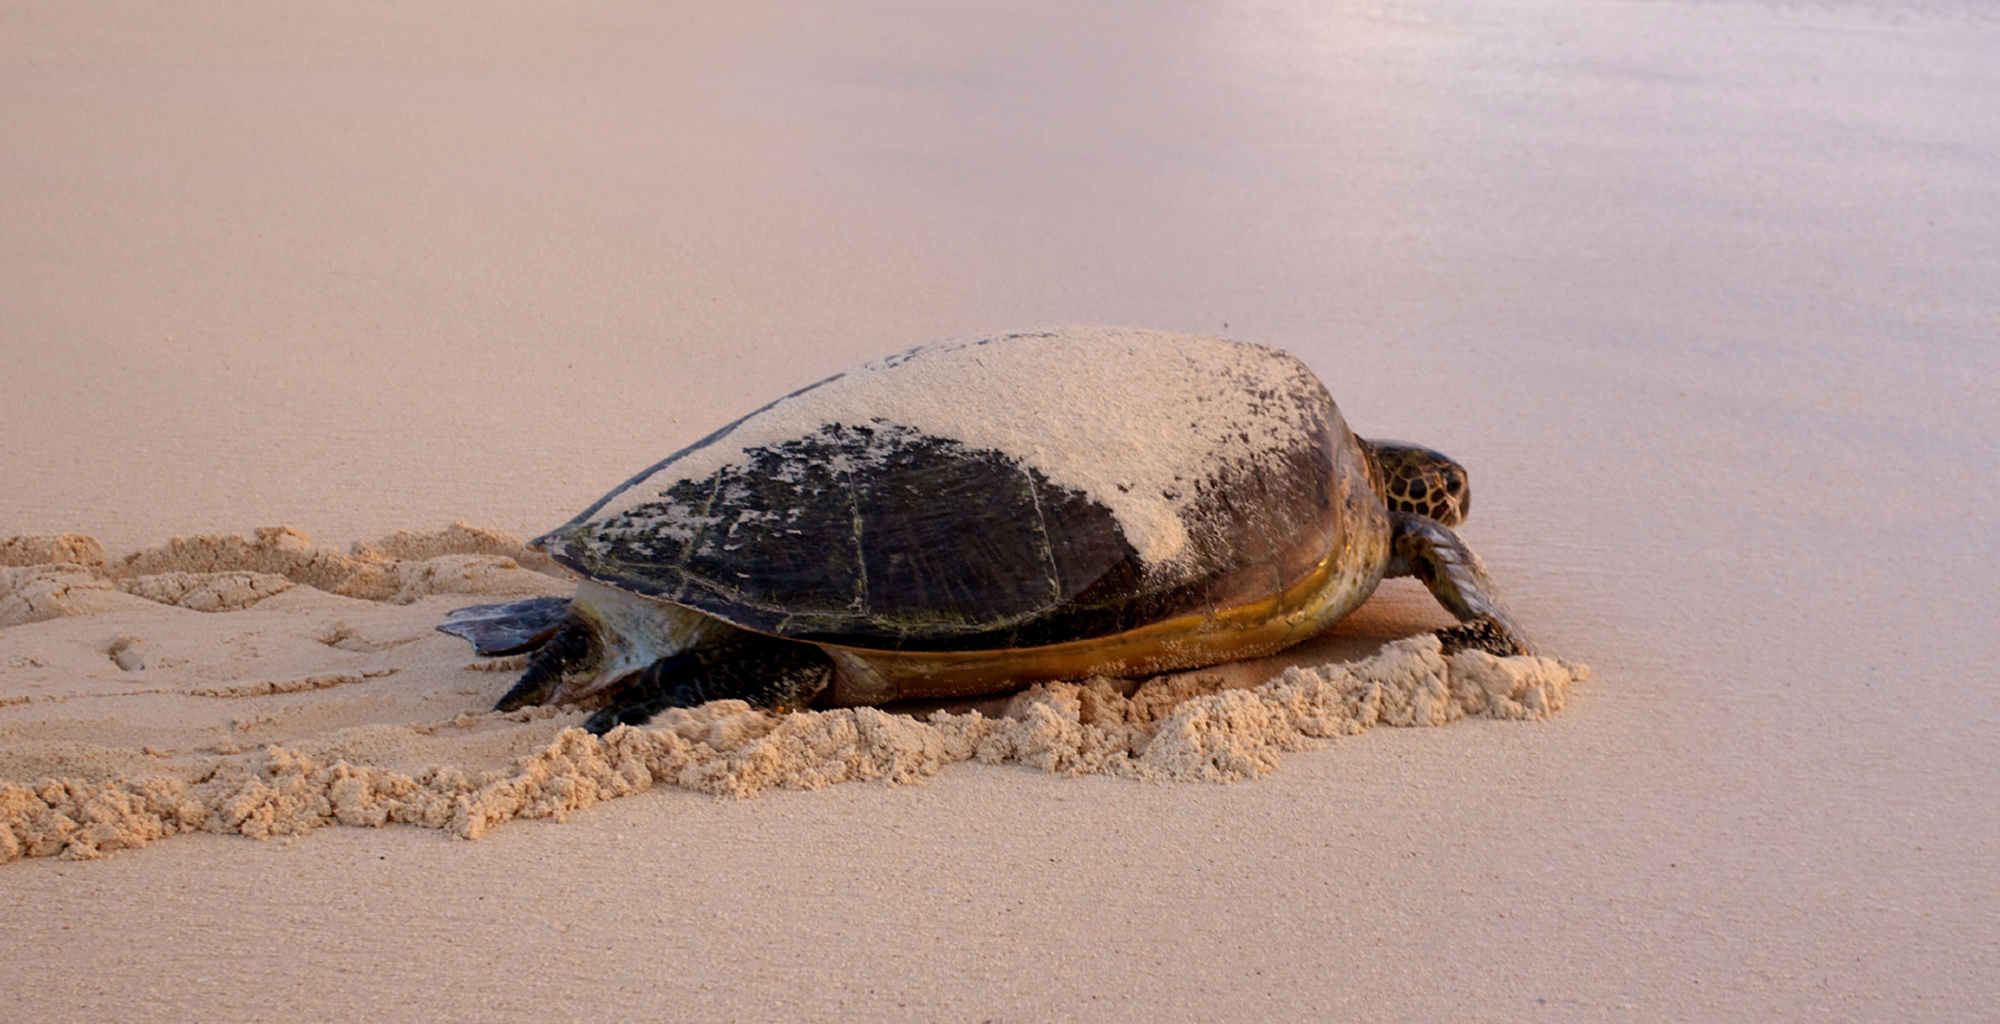 Mozambique-Wildlife-Turtle